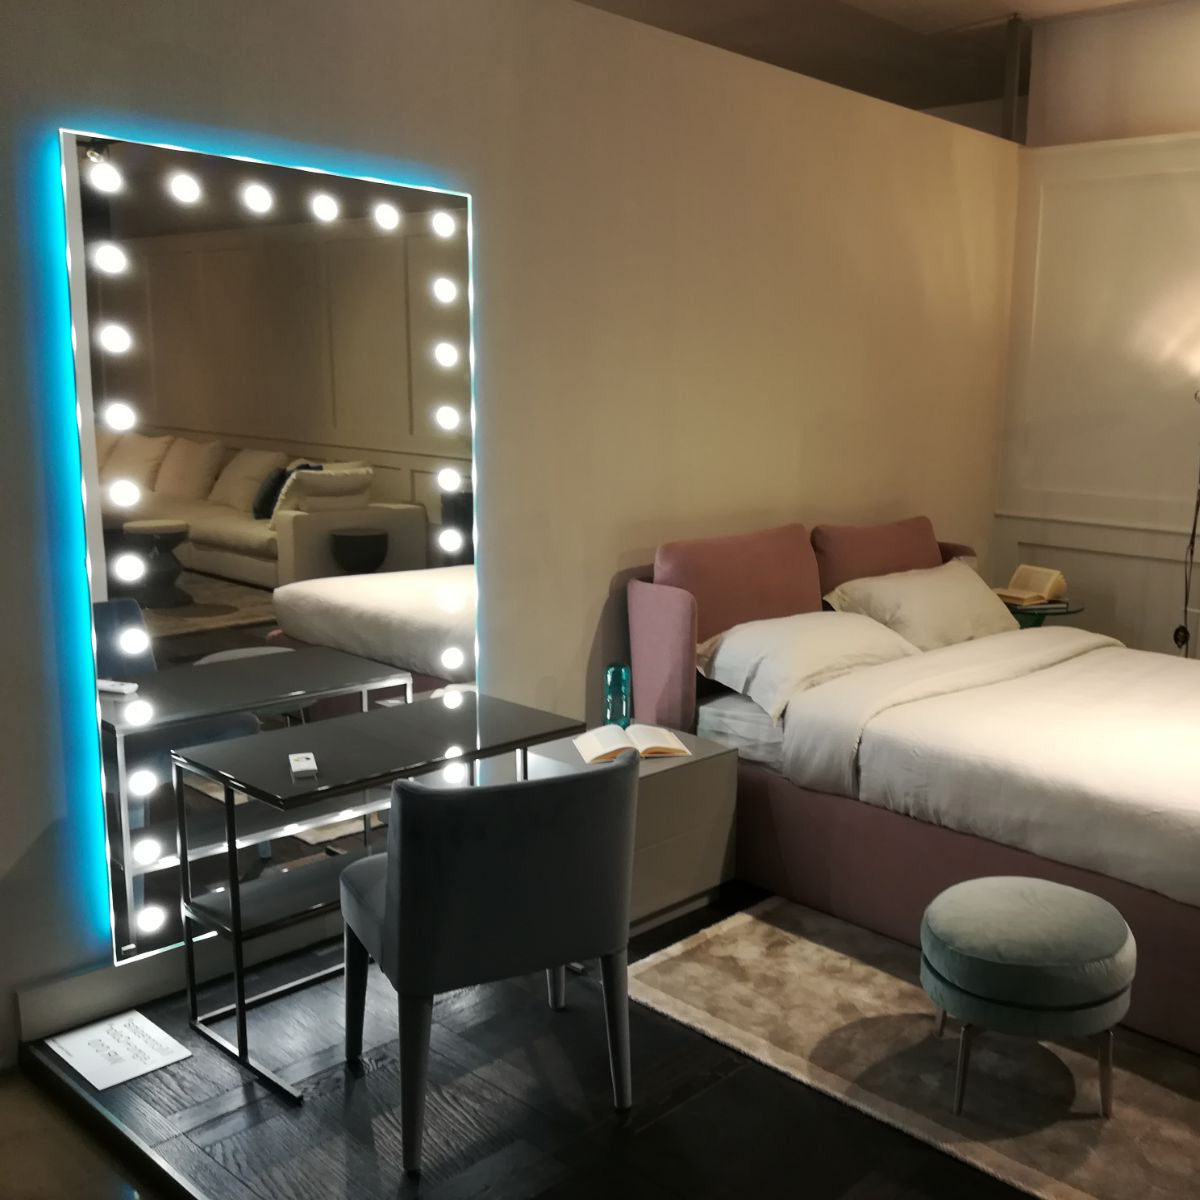 Popular Lit Wall Mirrors Unica To Light Up The Bedroom For Bedroom Wall Mirrors (View 15 of 20)